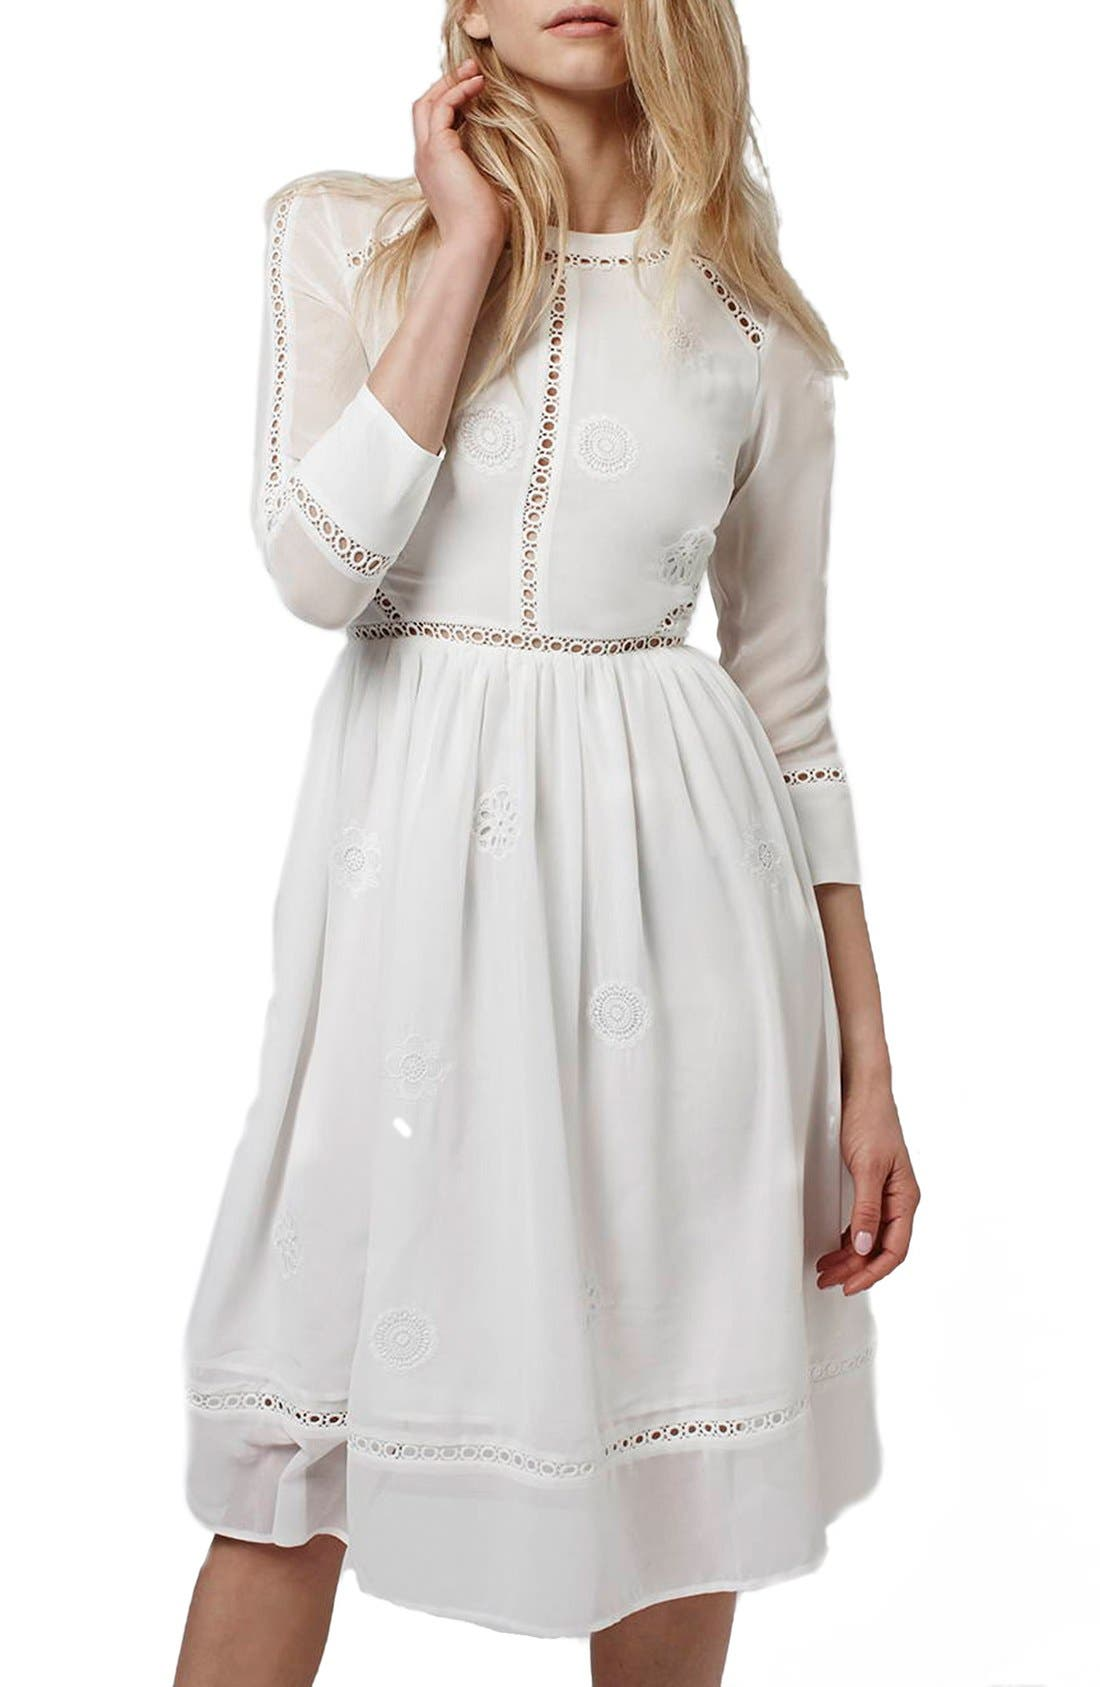 Main Image - Topshop 'Puritan' Cutwork Midi Dress